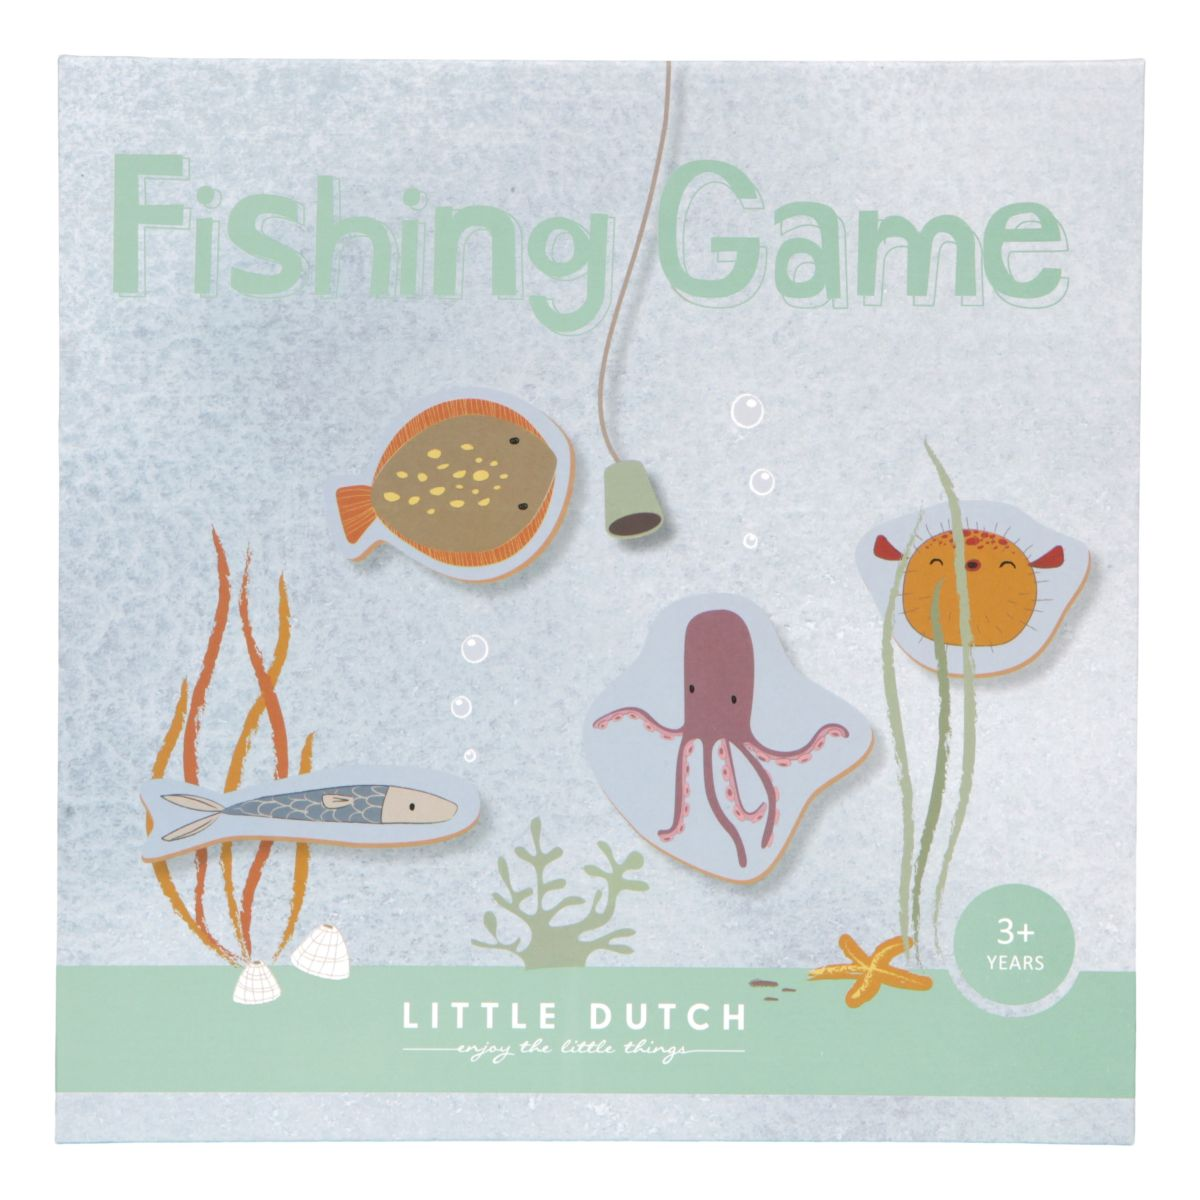 Angelspiel 'Fishing Game'